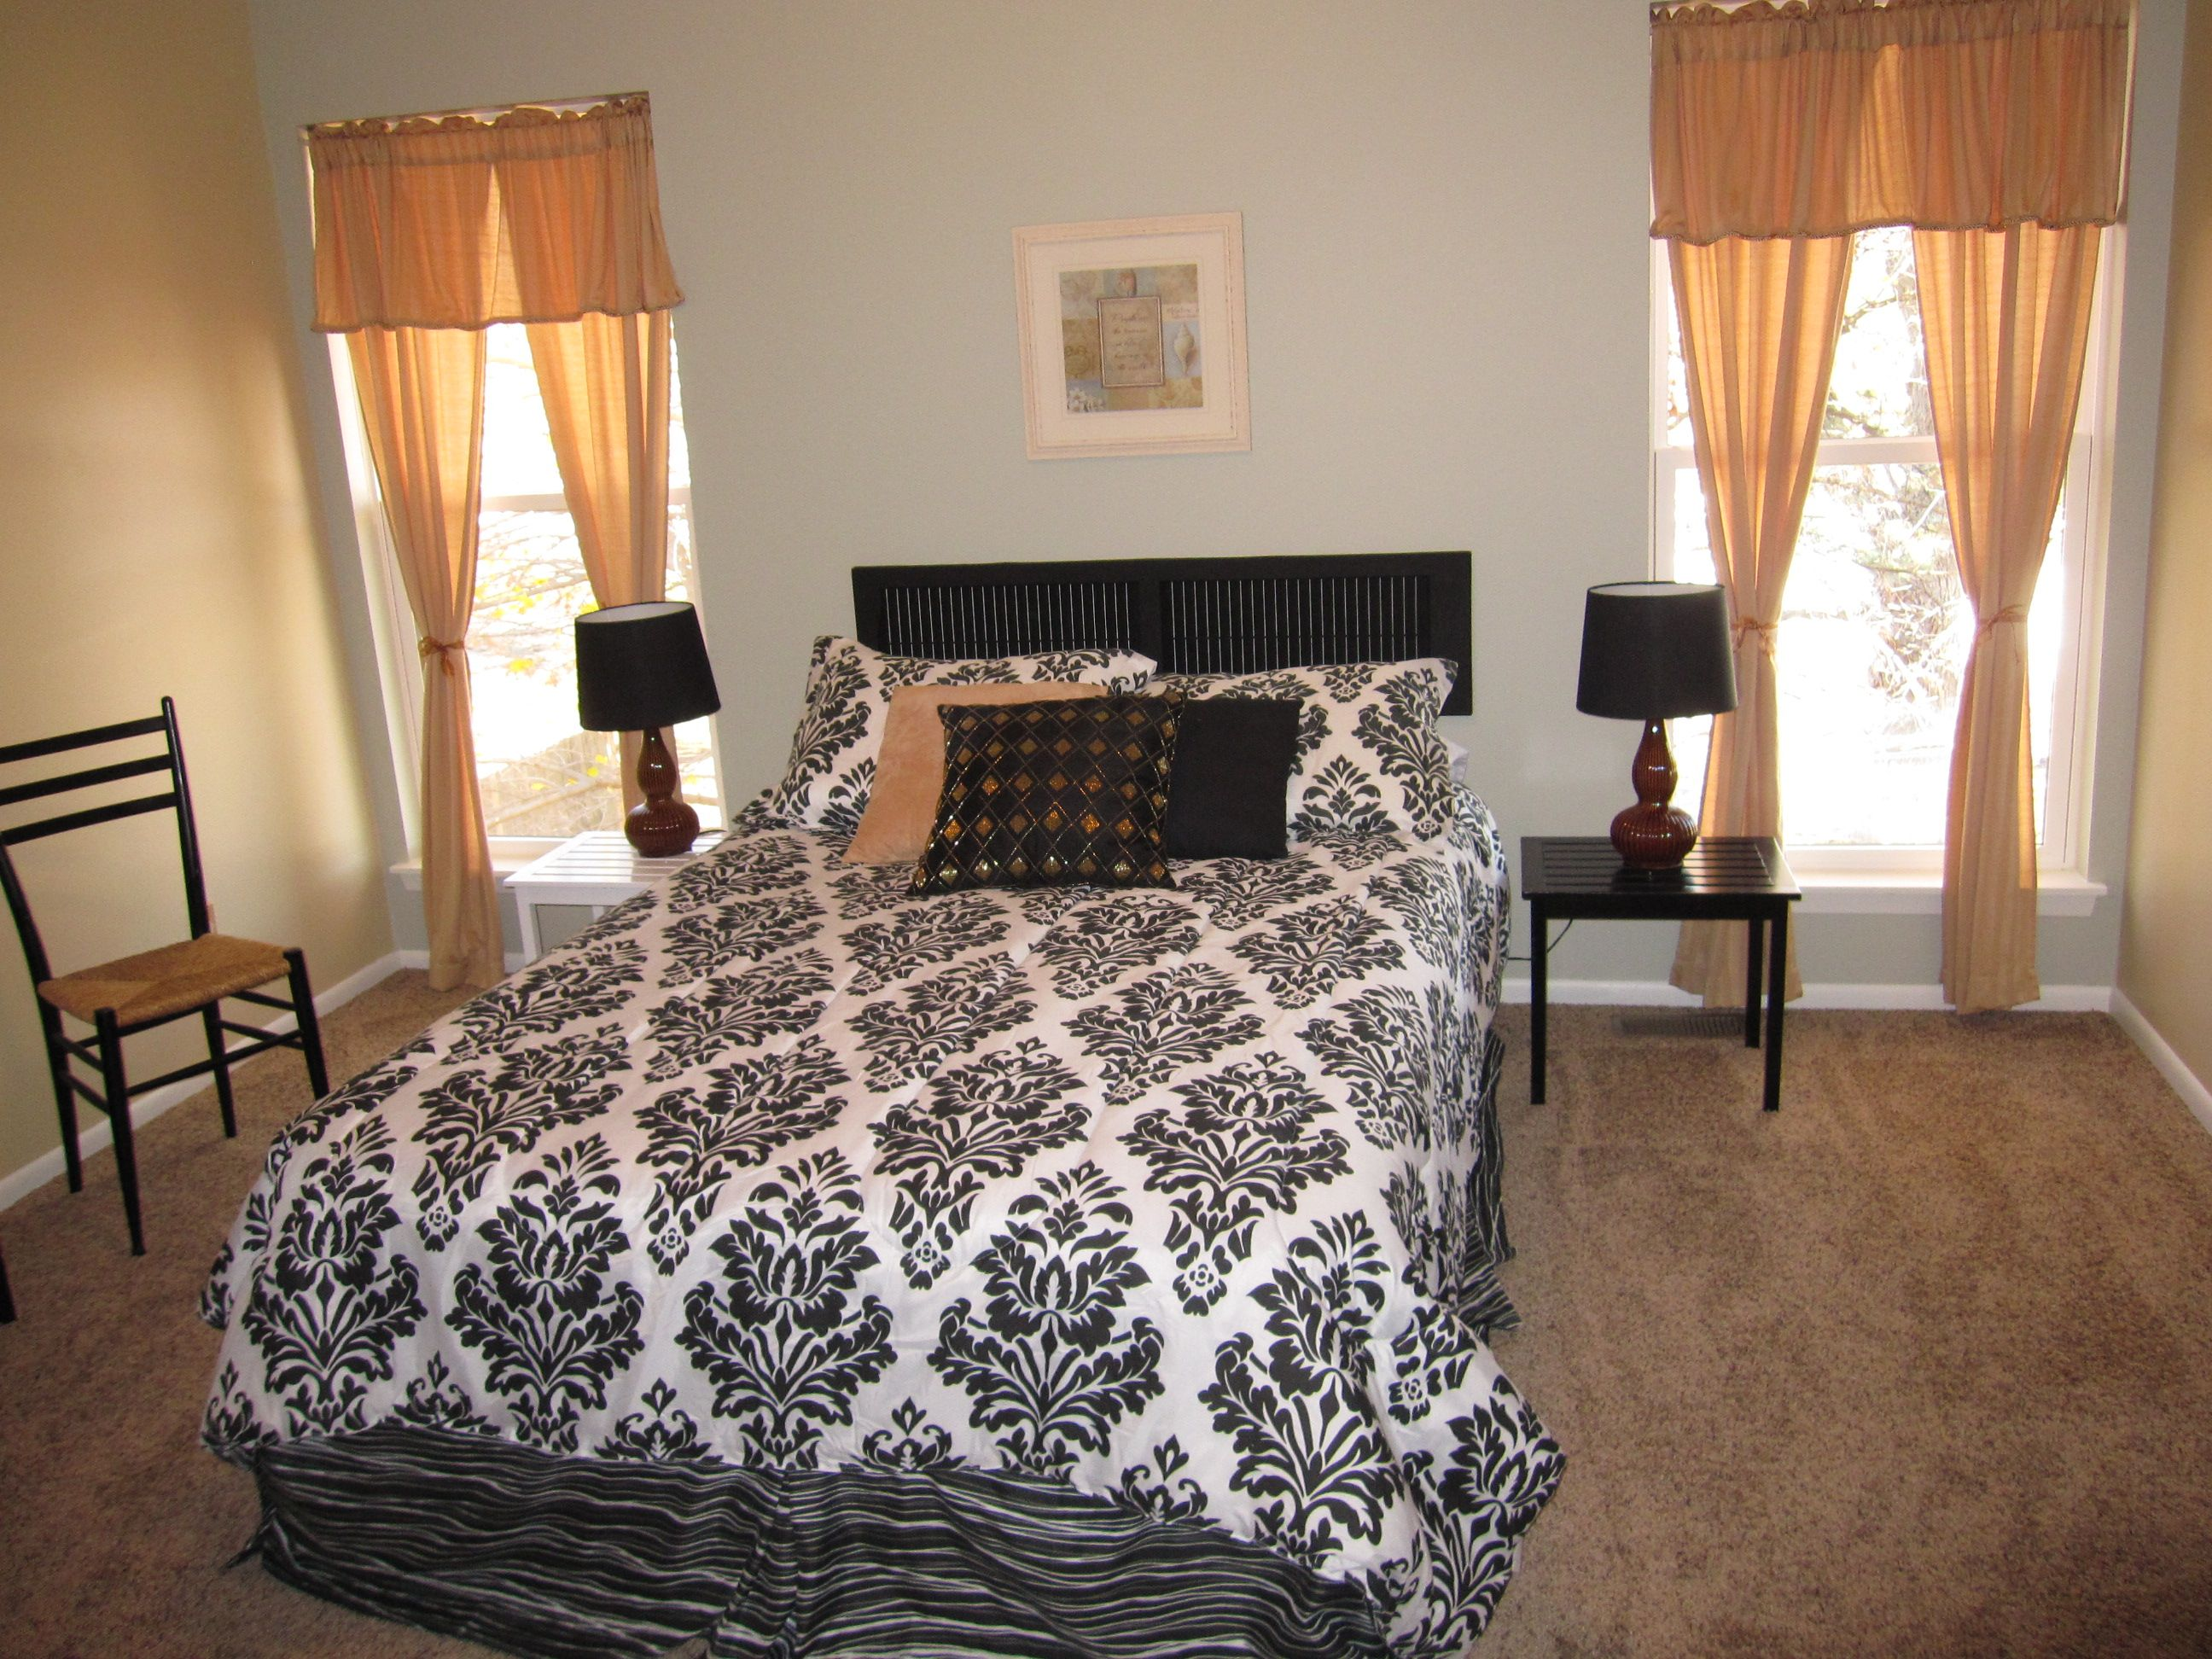 Staged Master Bedroom That 39 S An Air Mattress And A Shutter For A Headboard Home Staging And